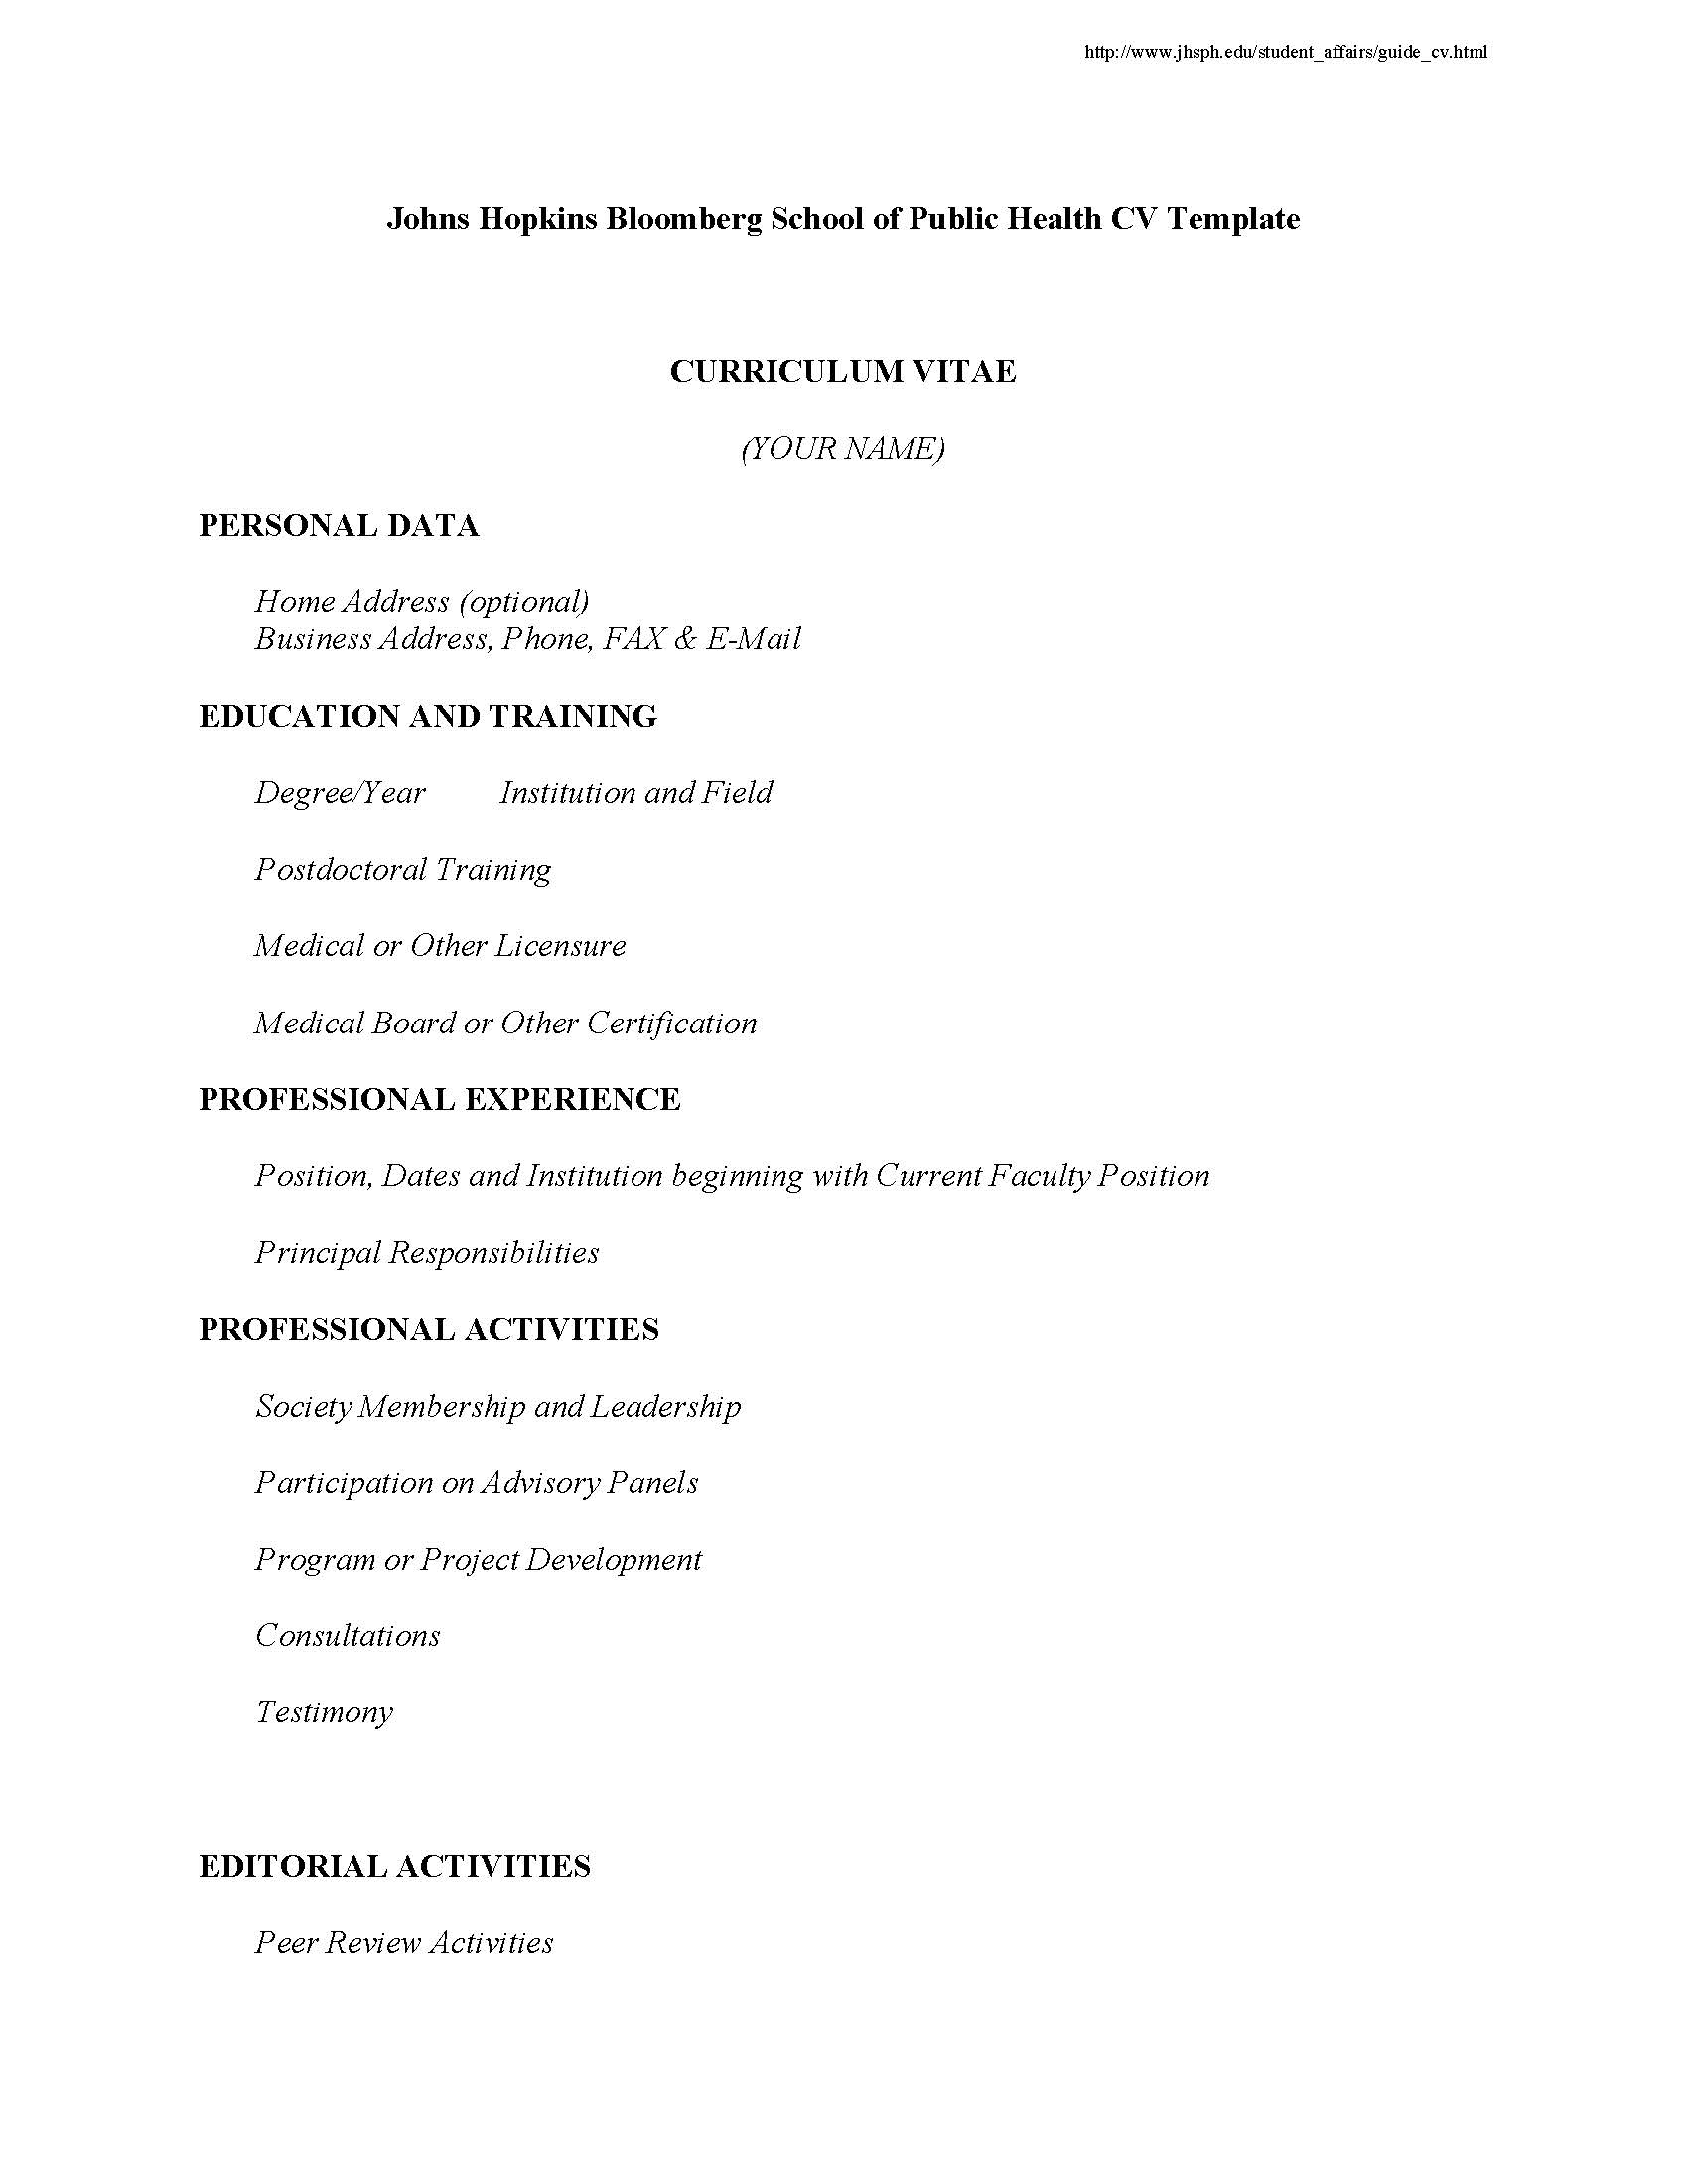 Format Of Resume For Student Resumes And Cvs Career Resources For Students Career